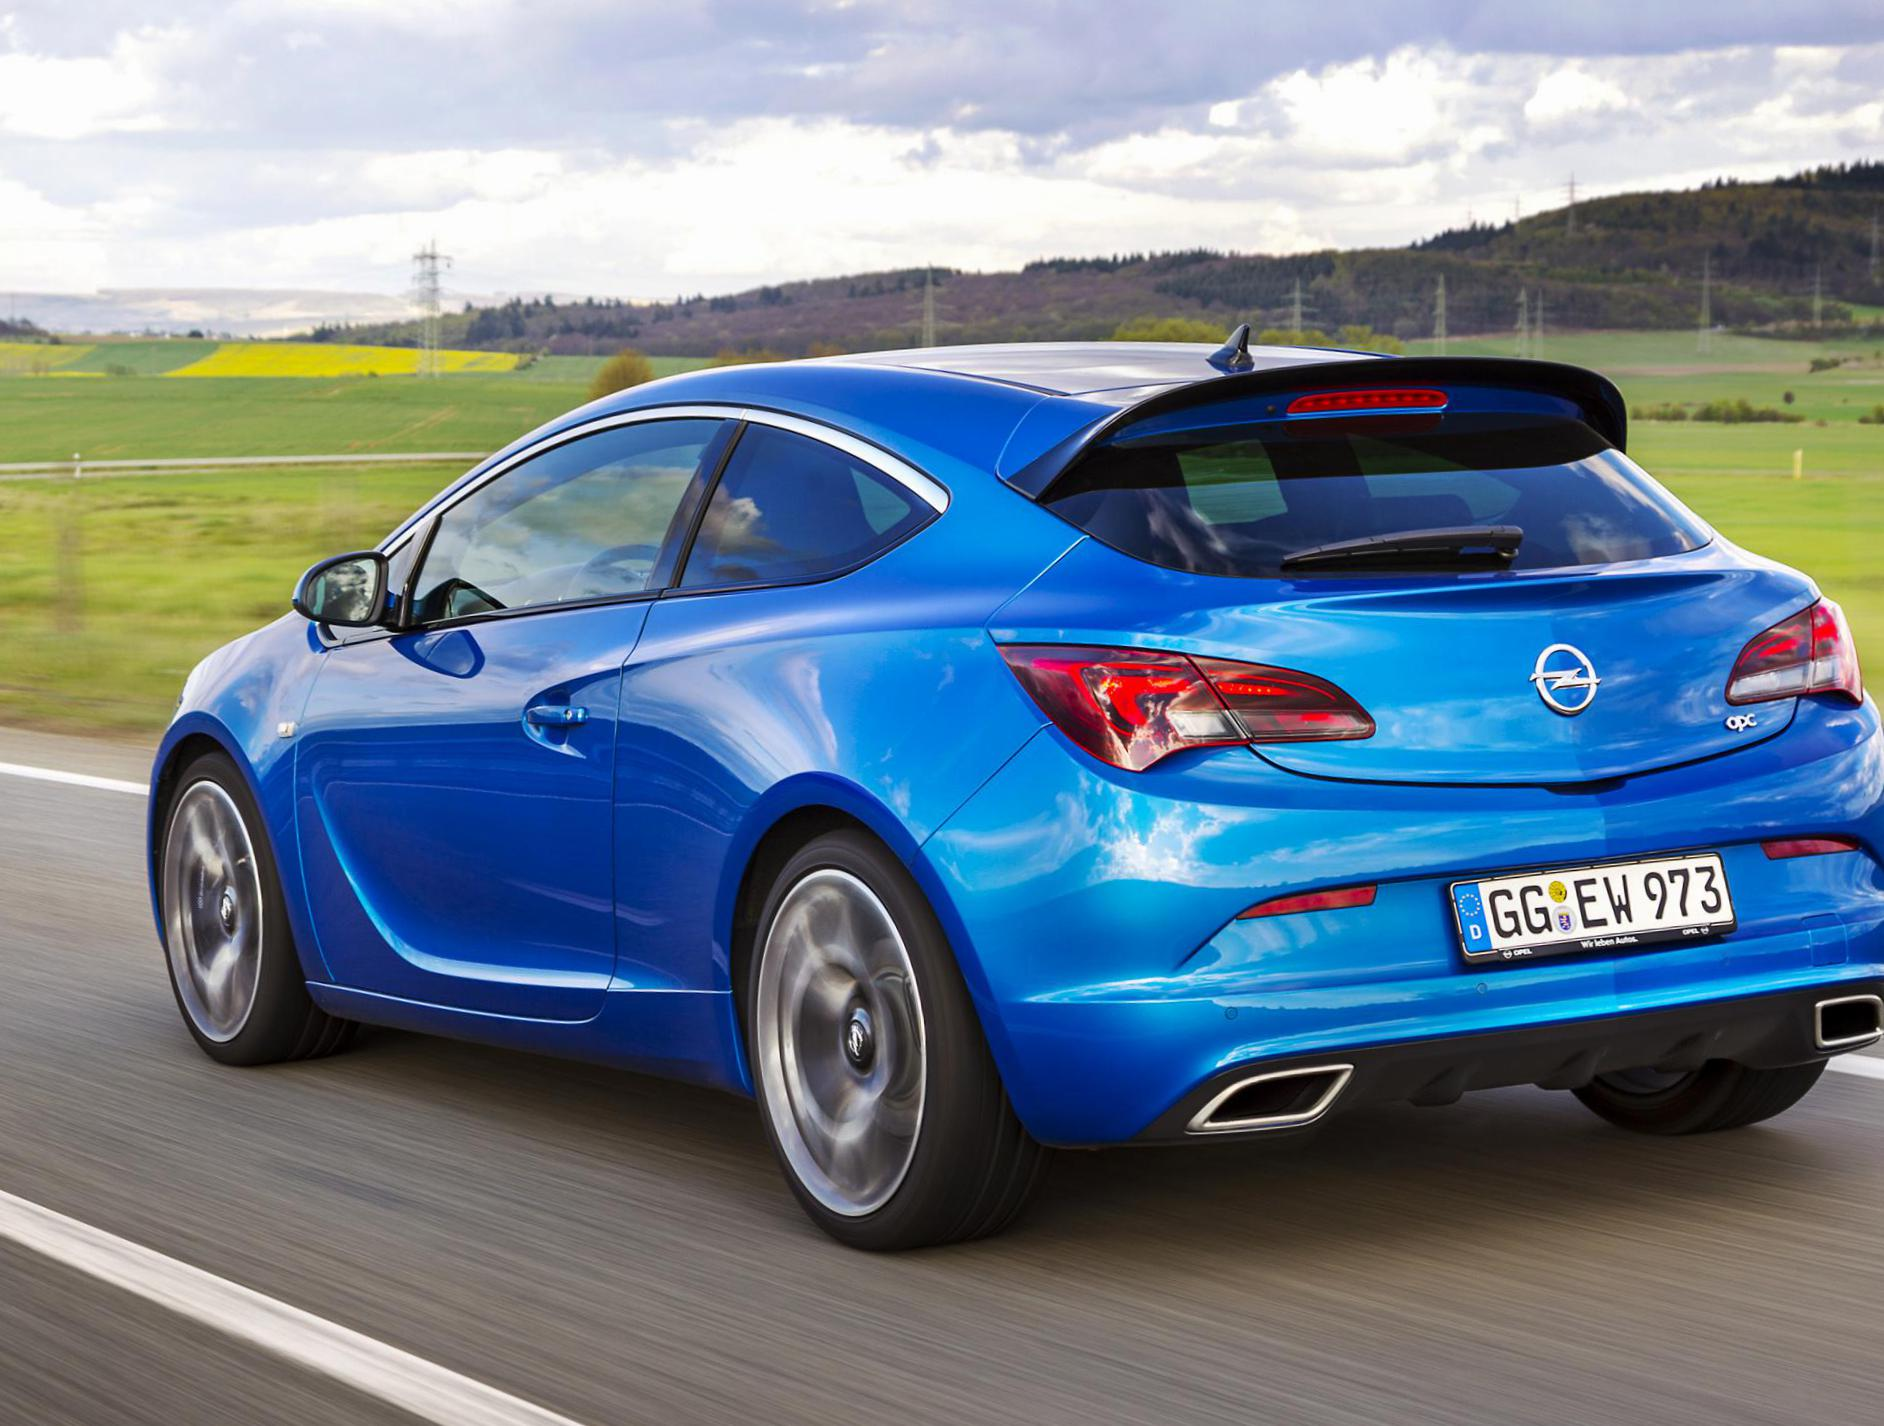 W superbly Opel Astra J OPC Photos and Specs. Photo: Astra J OPC Opel specs YB35